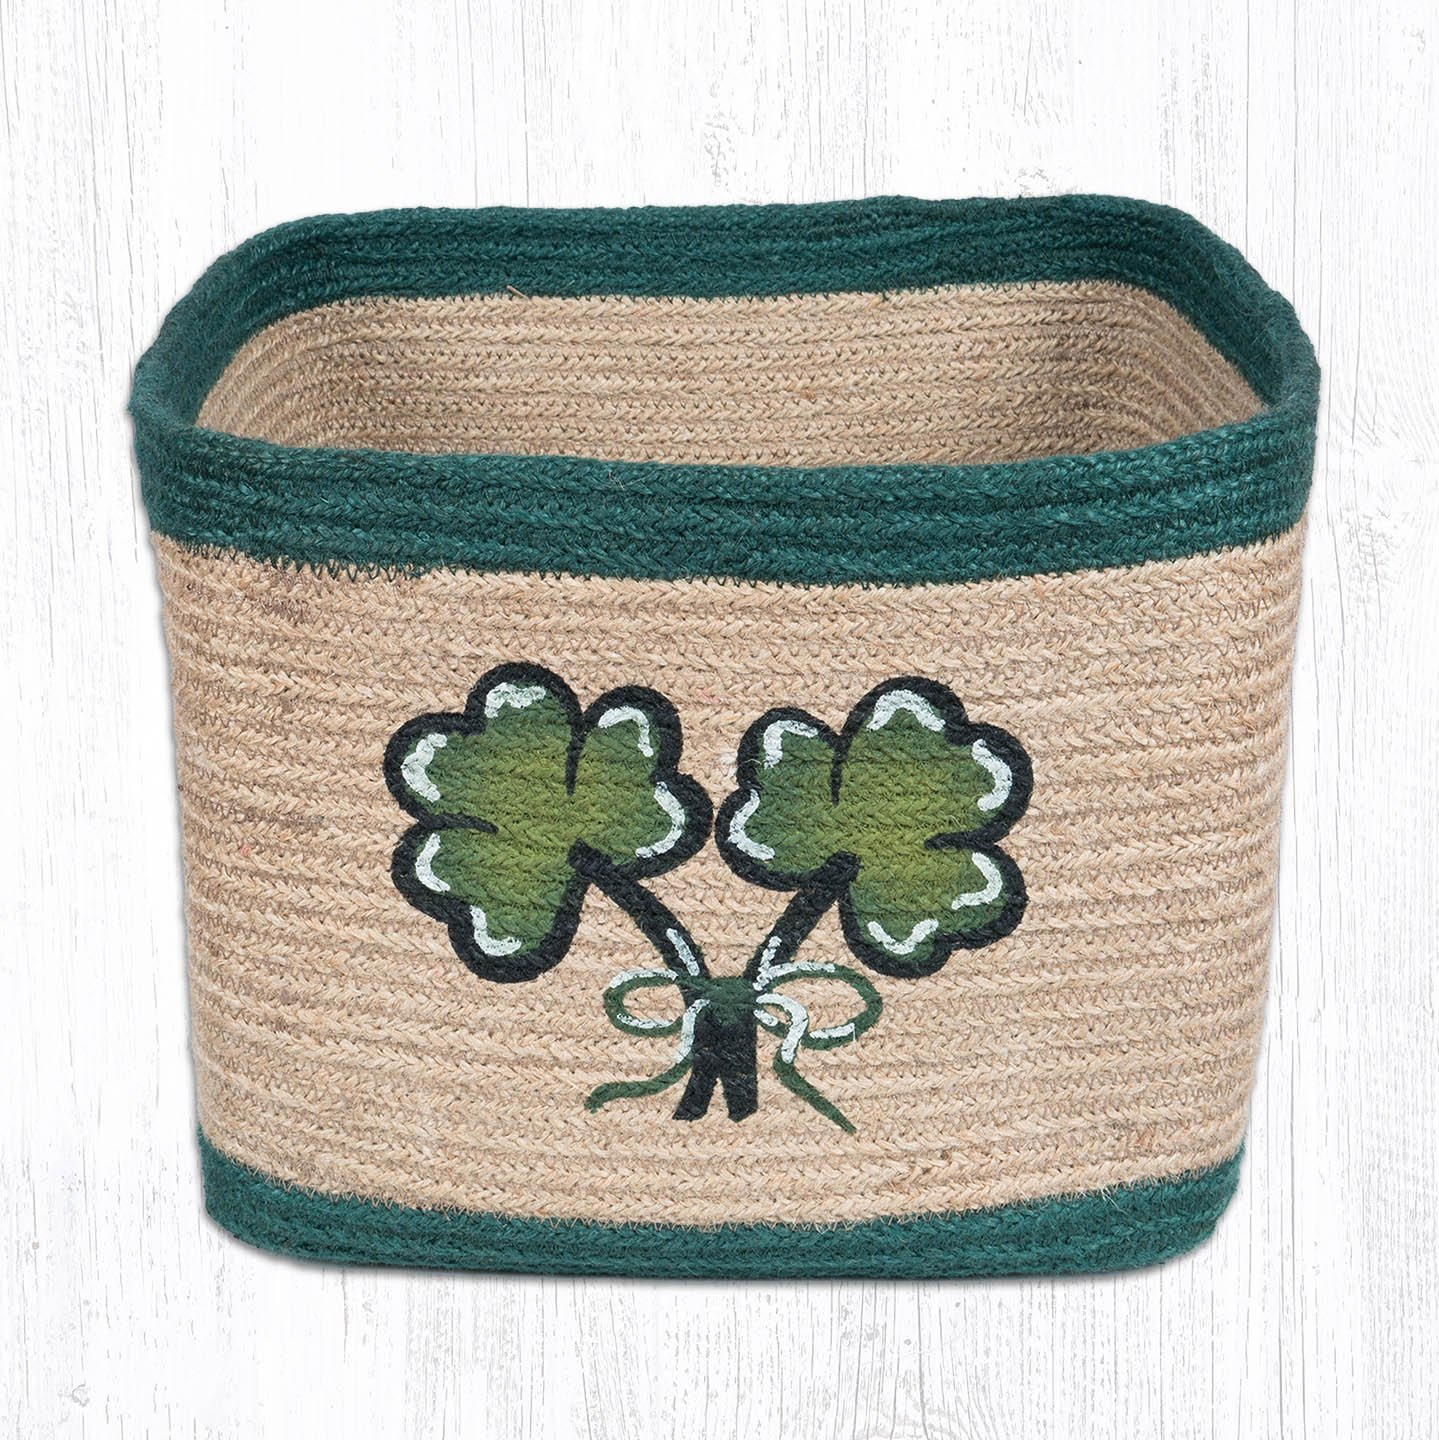 Heart of America Shamrock Square Printed Basket 10 in. by 10 in.